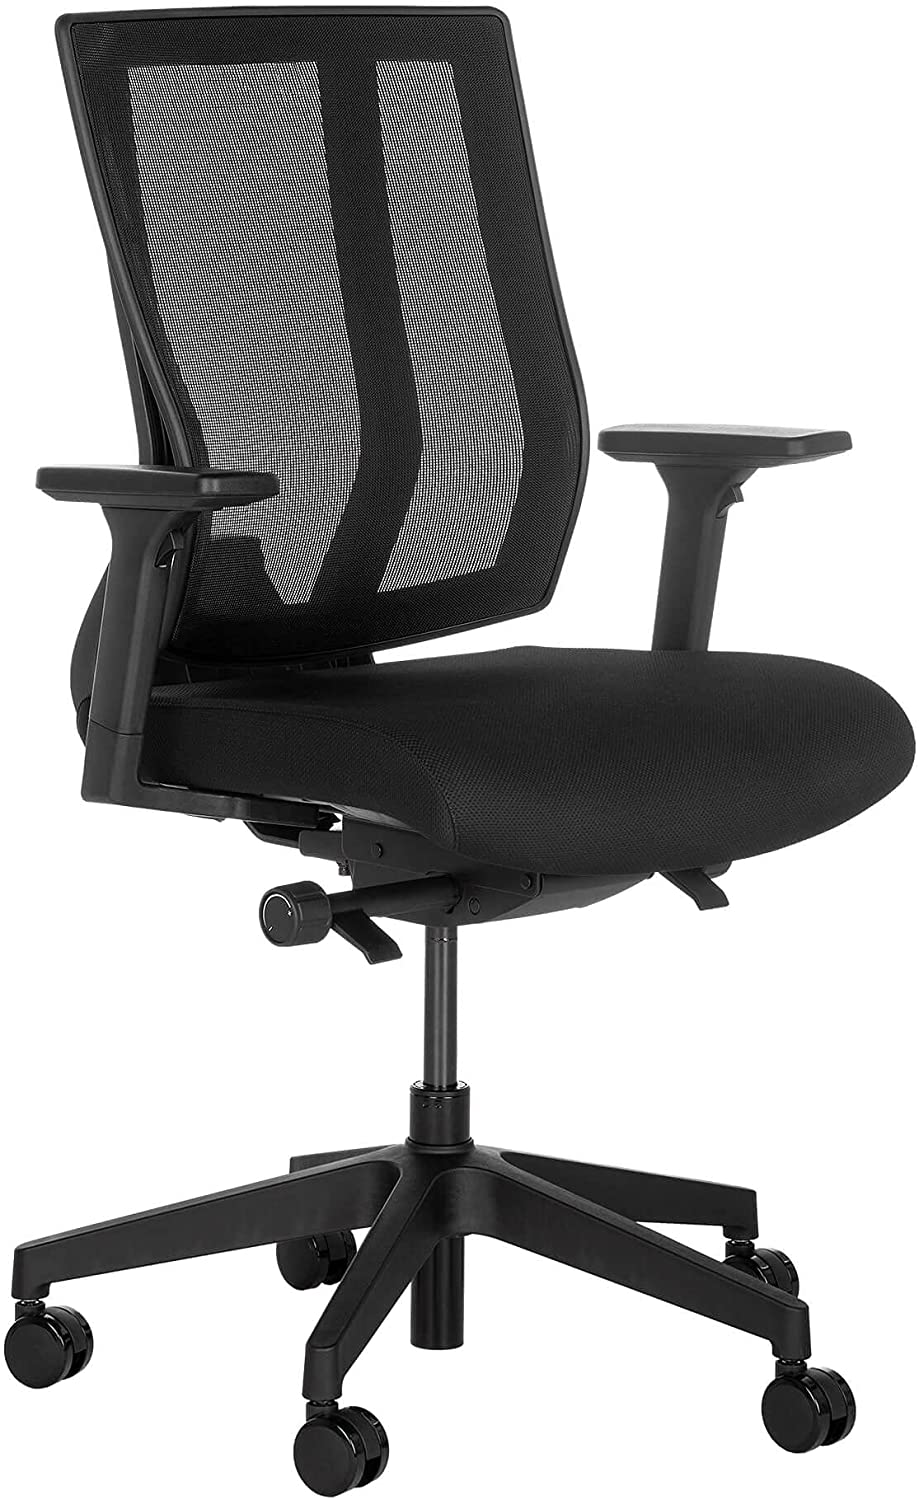 Vari Task Tucson Mall Chair - Office Points Multiple with Adjustment a price